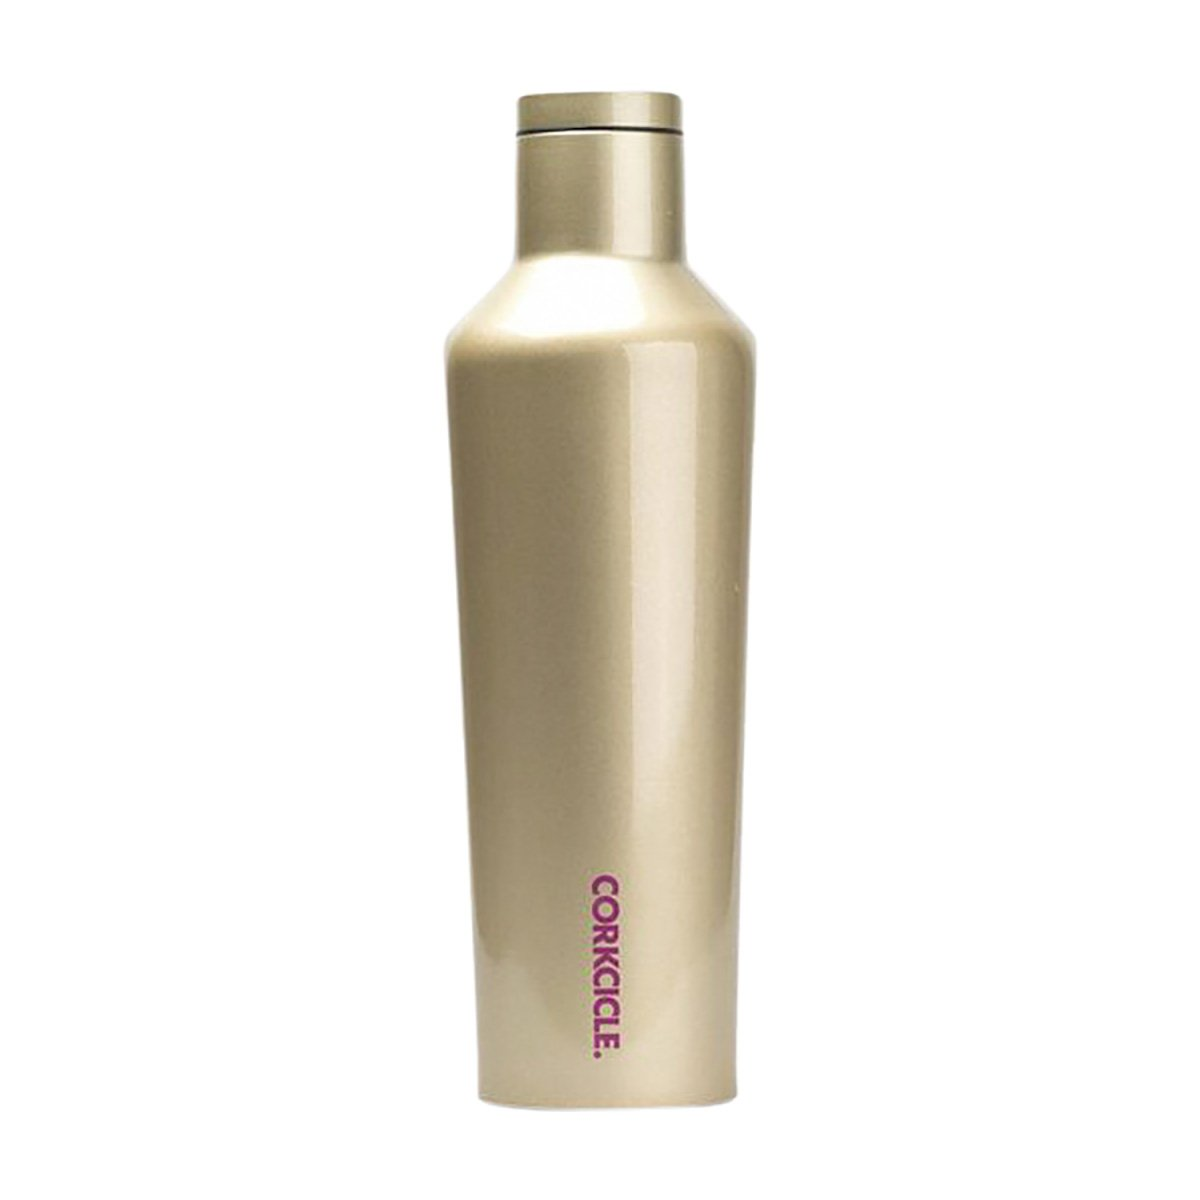 Glassware and Accessories Glampagne Corkcicle Canteen 25 oz (4477727506455)